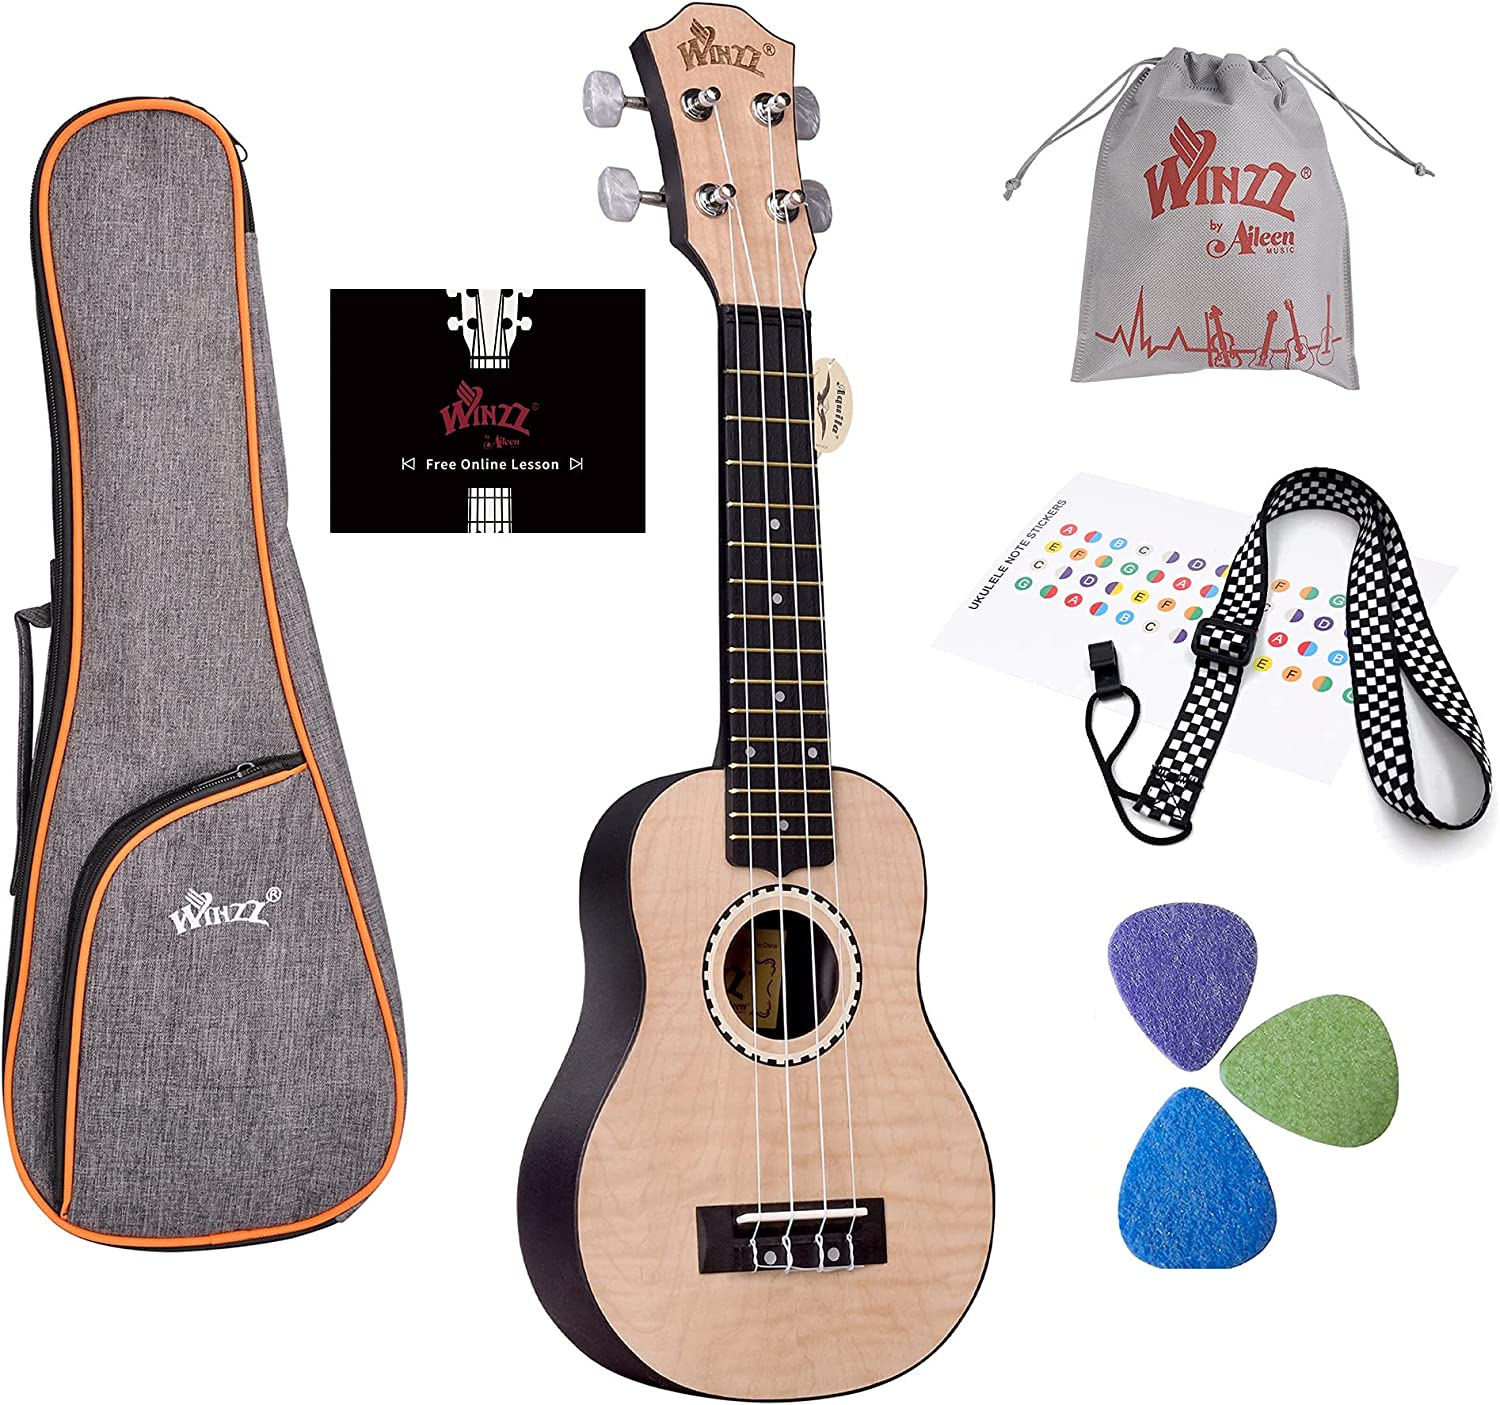 WINZZ 21 Inches Soprano Ukulele Same day shipping for School Adults Kids Beginners Milwaukee Mall